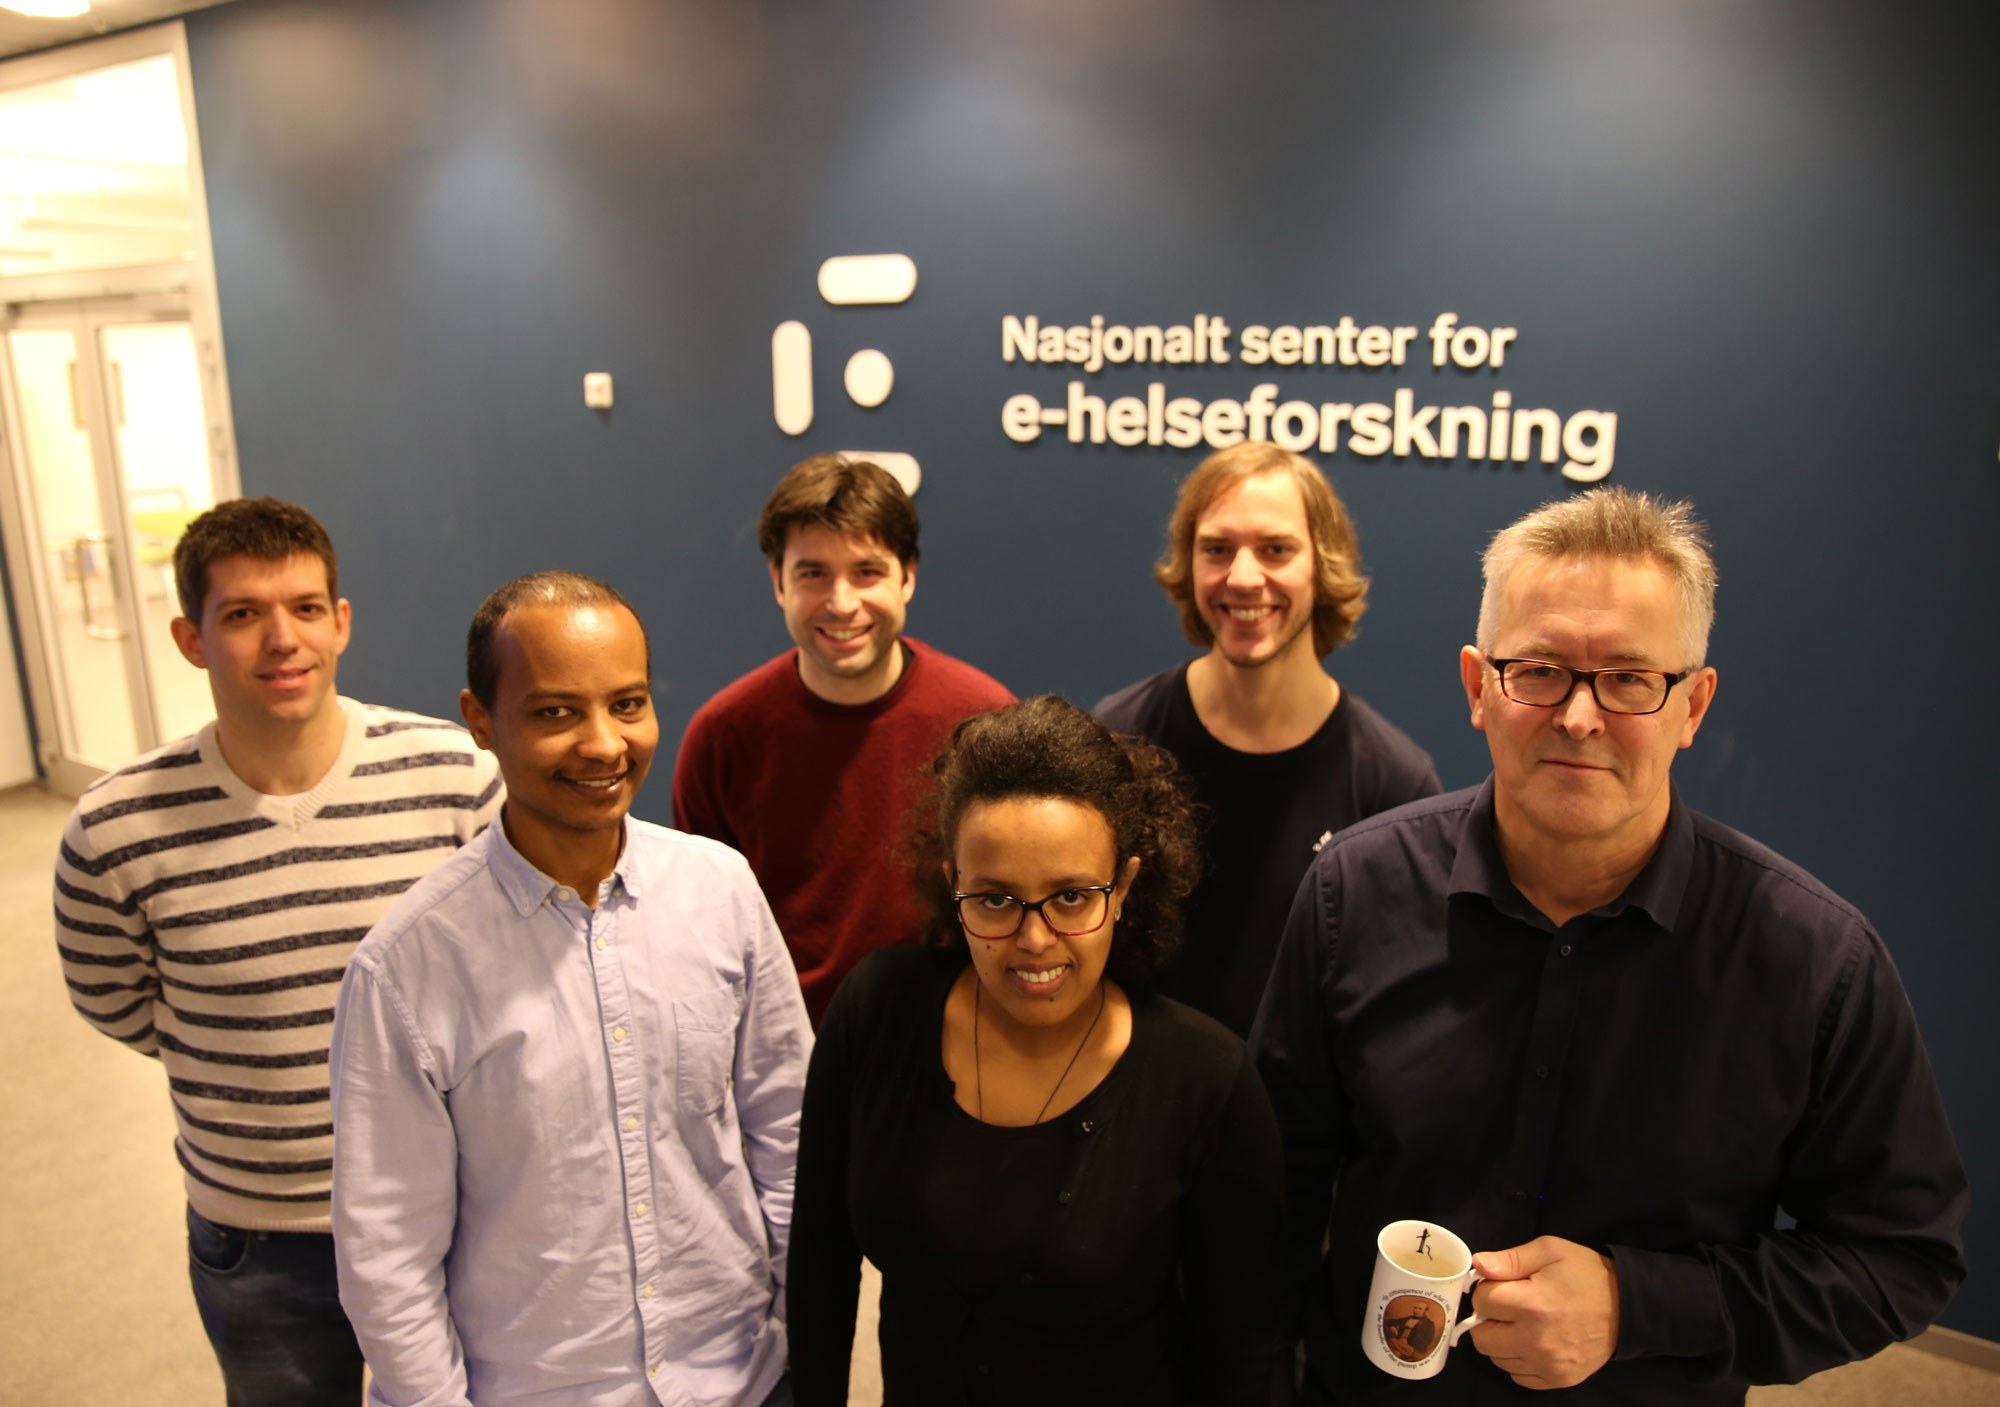 Some of the people on the health data team, from left: Joseph Hurley, Kassaye Yigzaw, Luis Marco-Ruiz, Meskerem Asfaw, Torje D. Henriksen and Johan Gustav Bellika. Photo: Lene Lundberg